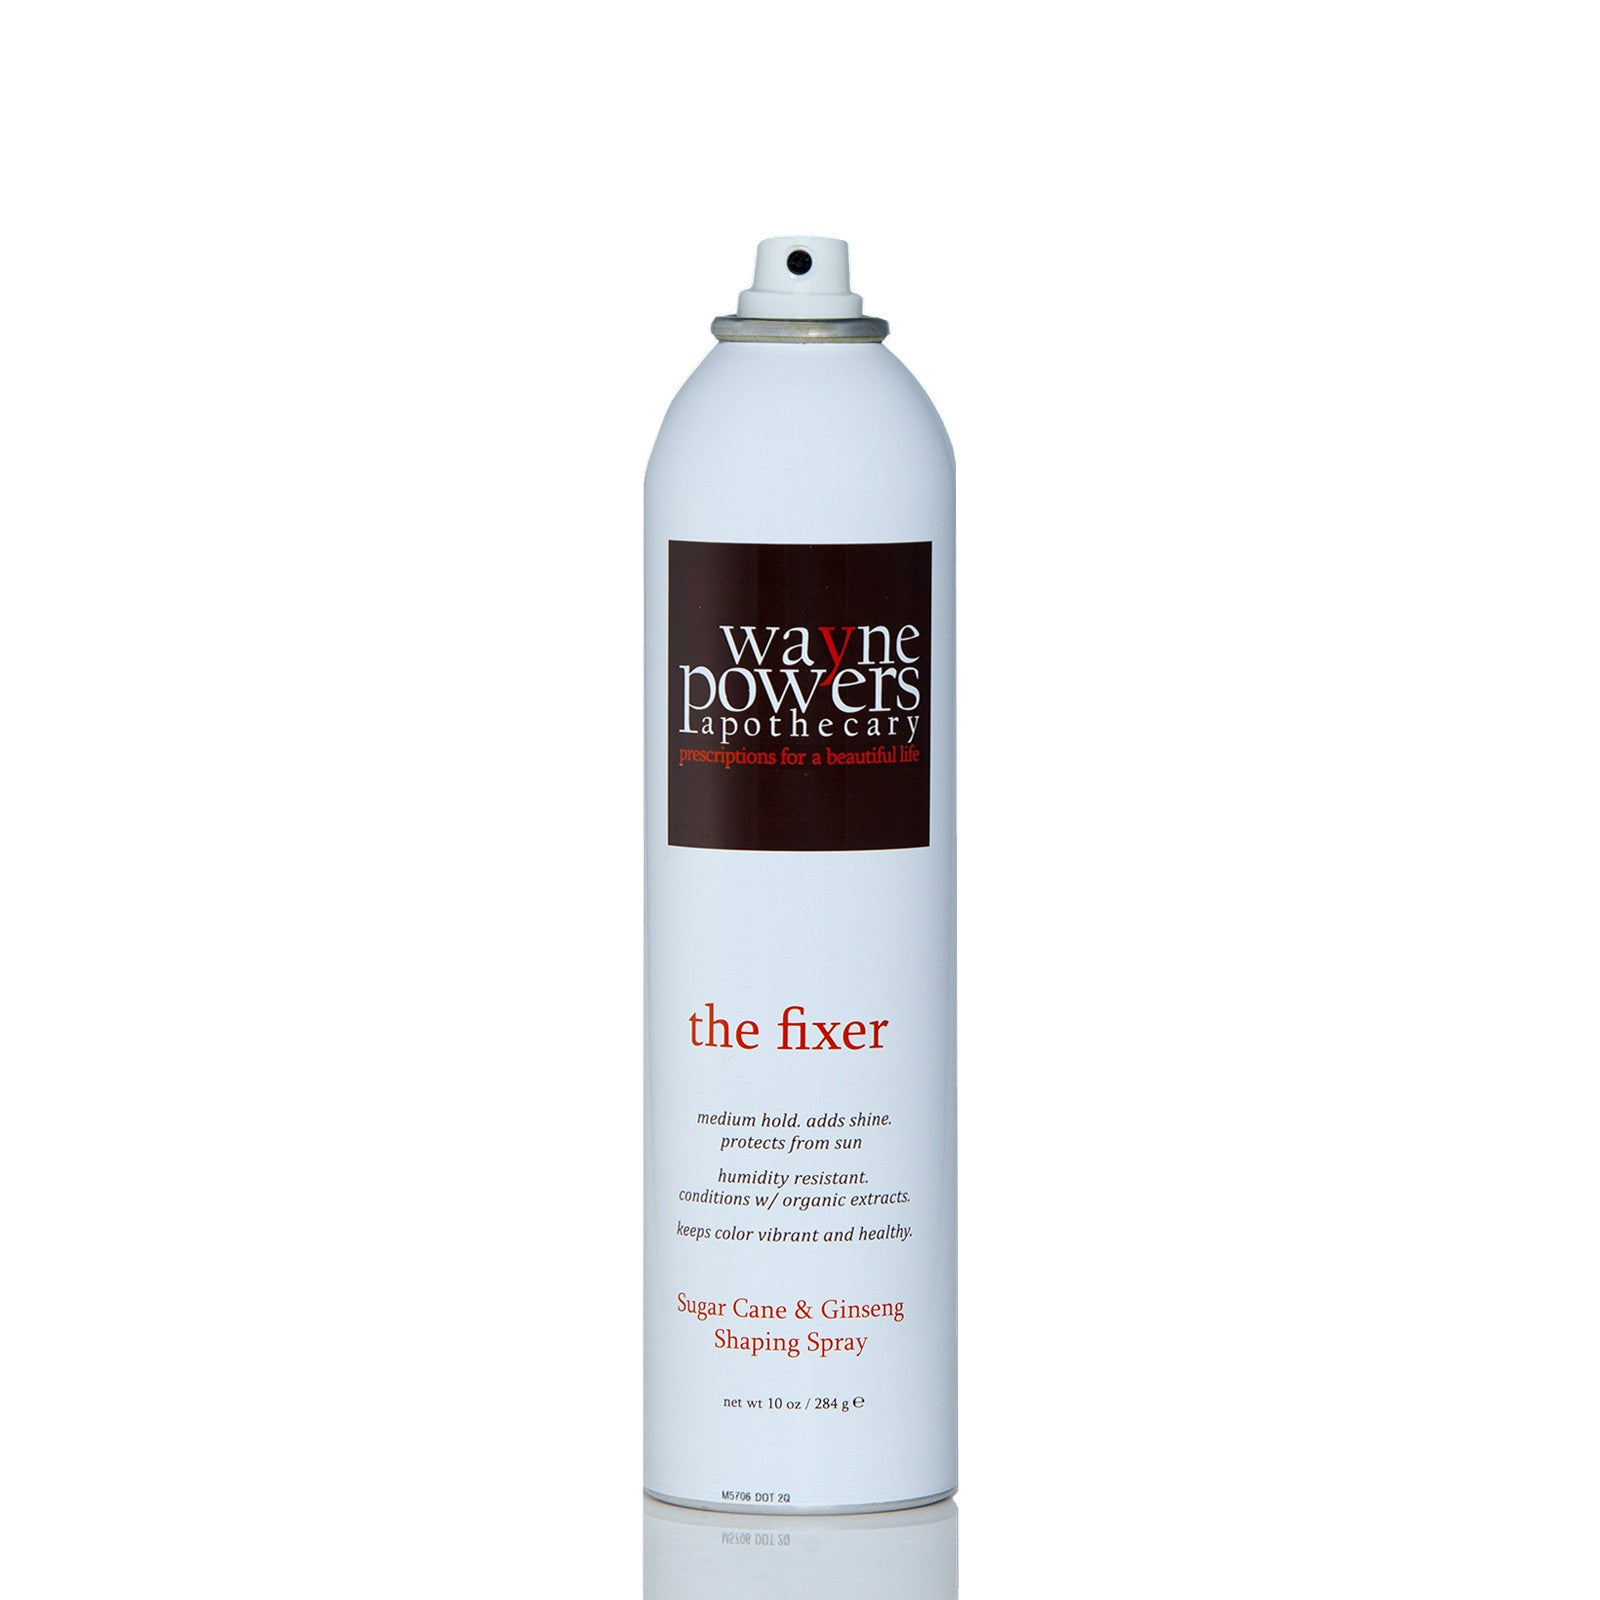 The Fixer Sugar Cane & Ginseng Shaping Spray by Wayne Powers Apothecary